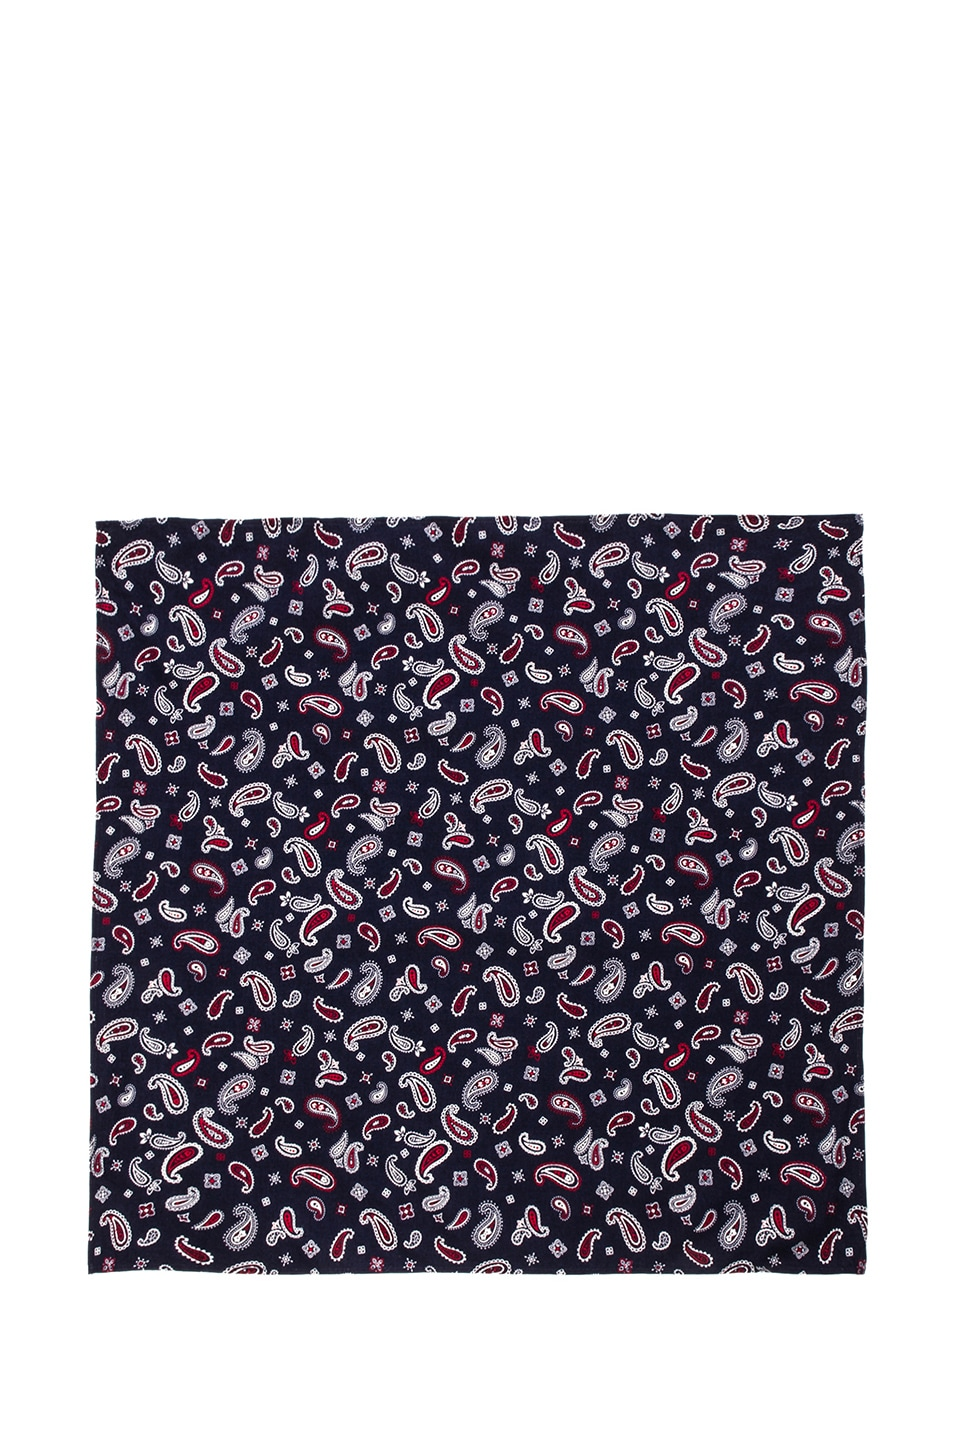 United Stock Dry Goods Bandana in Navy Paisley